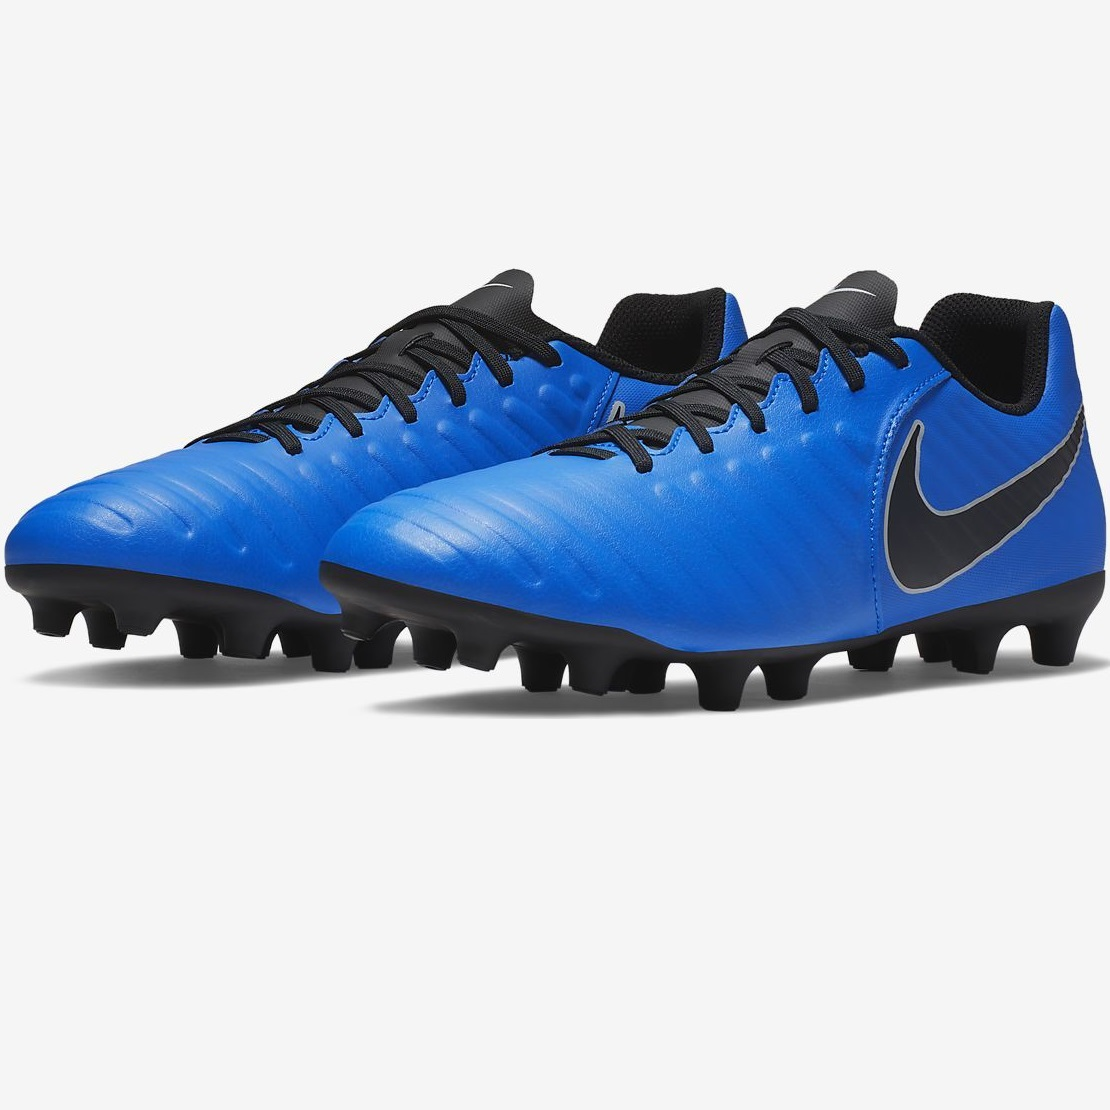 NIKE LEGEND 7 CLUB FG AO2597-400